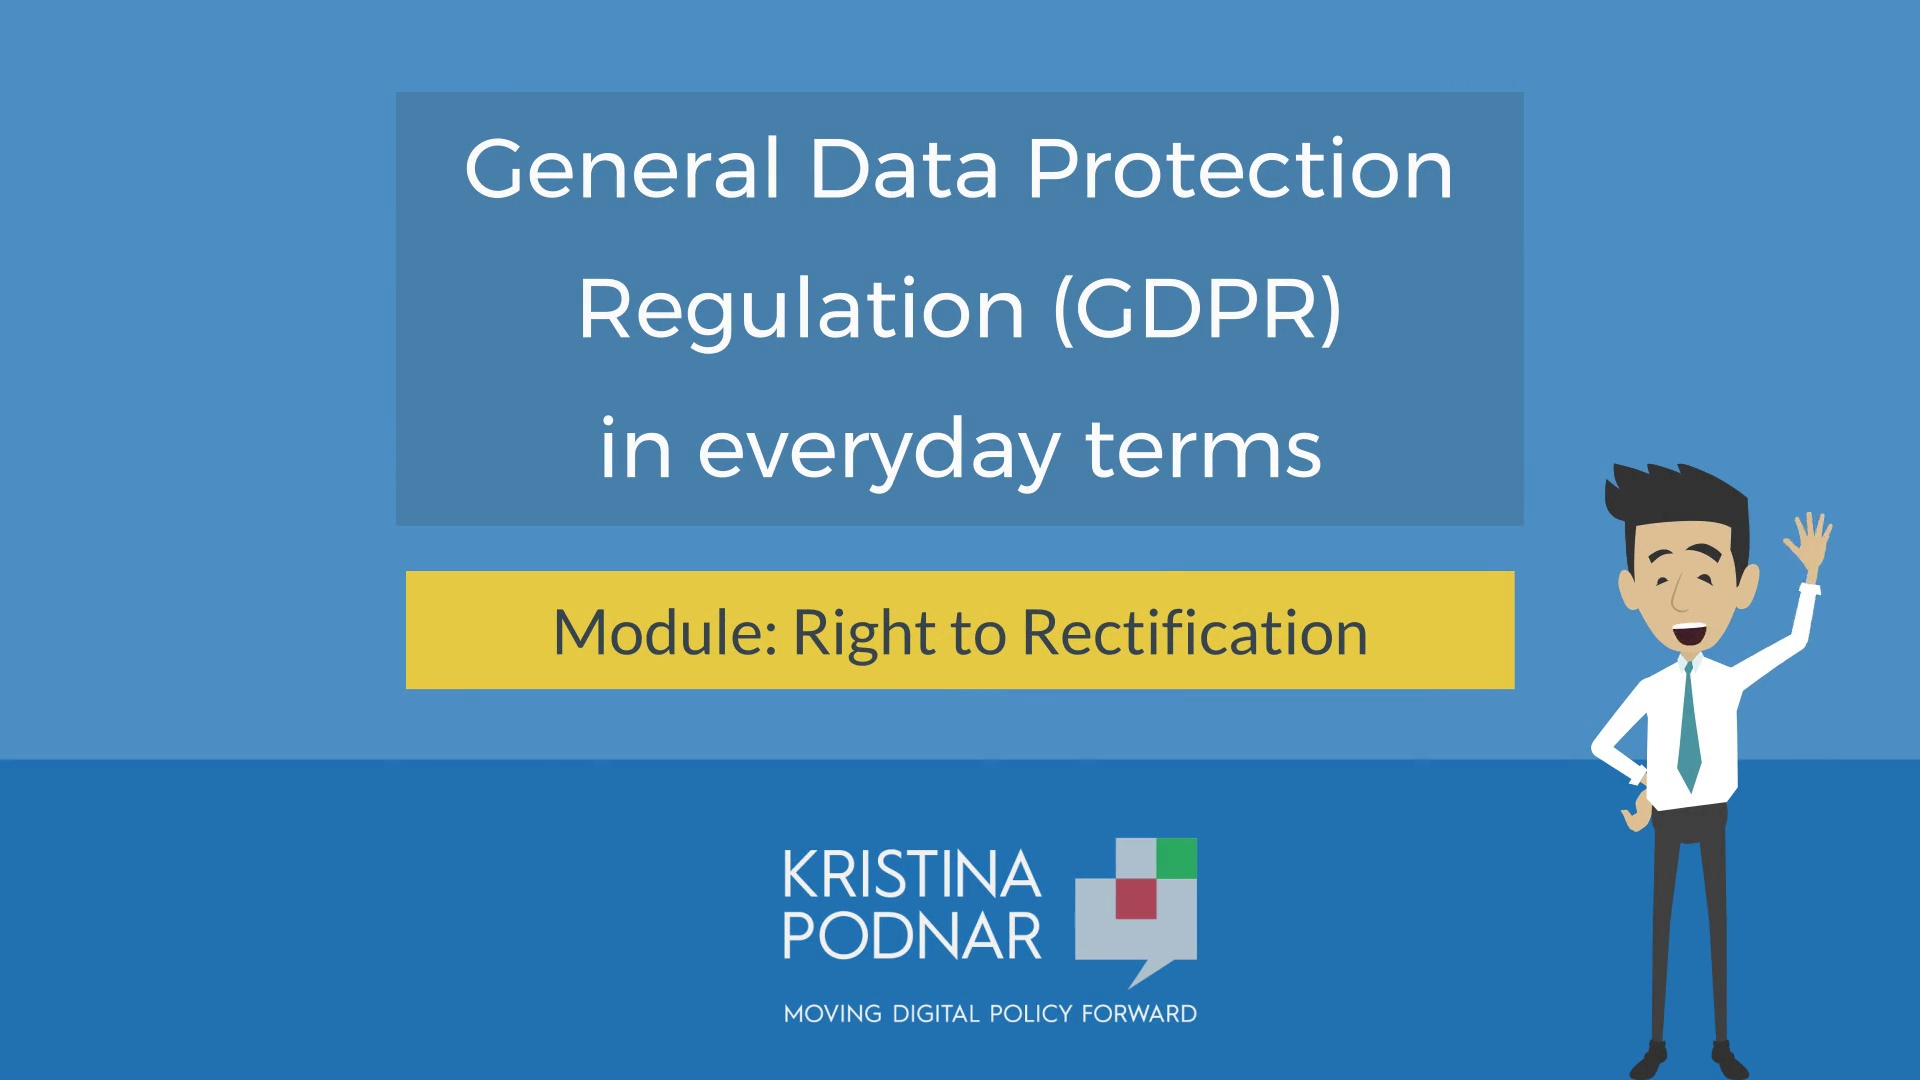 GDPR: Right to Rectification